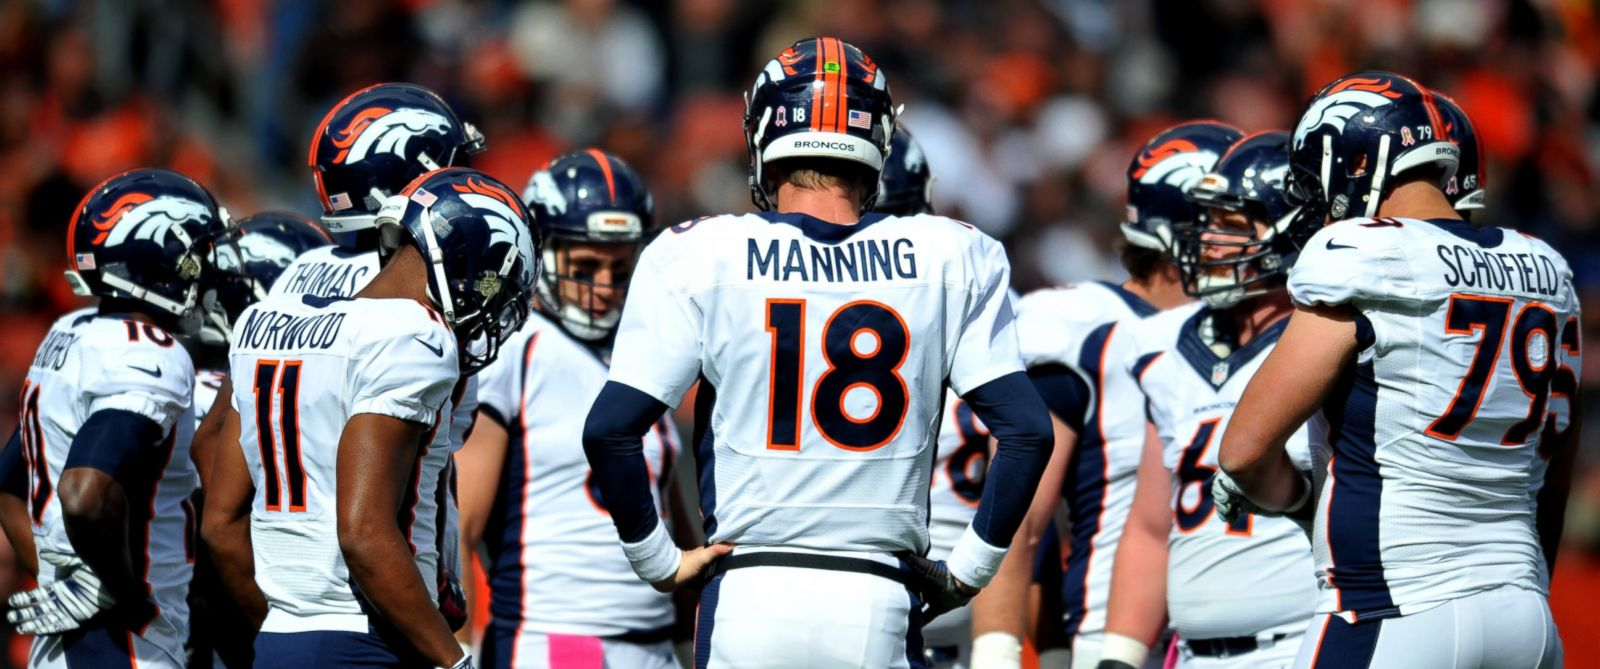 NFL Jerseys - Super Bowl 50: Pre-Game Rituals and Superstitions of the Carolina ...